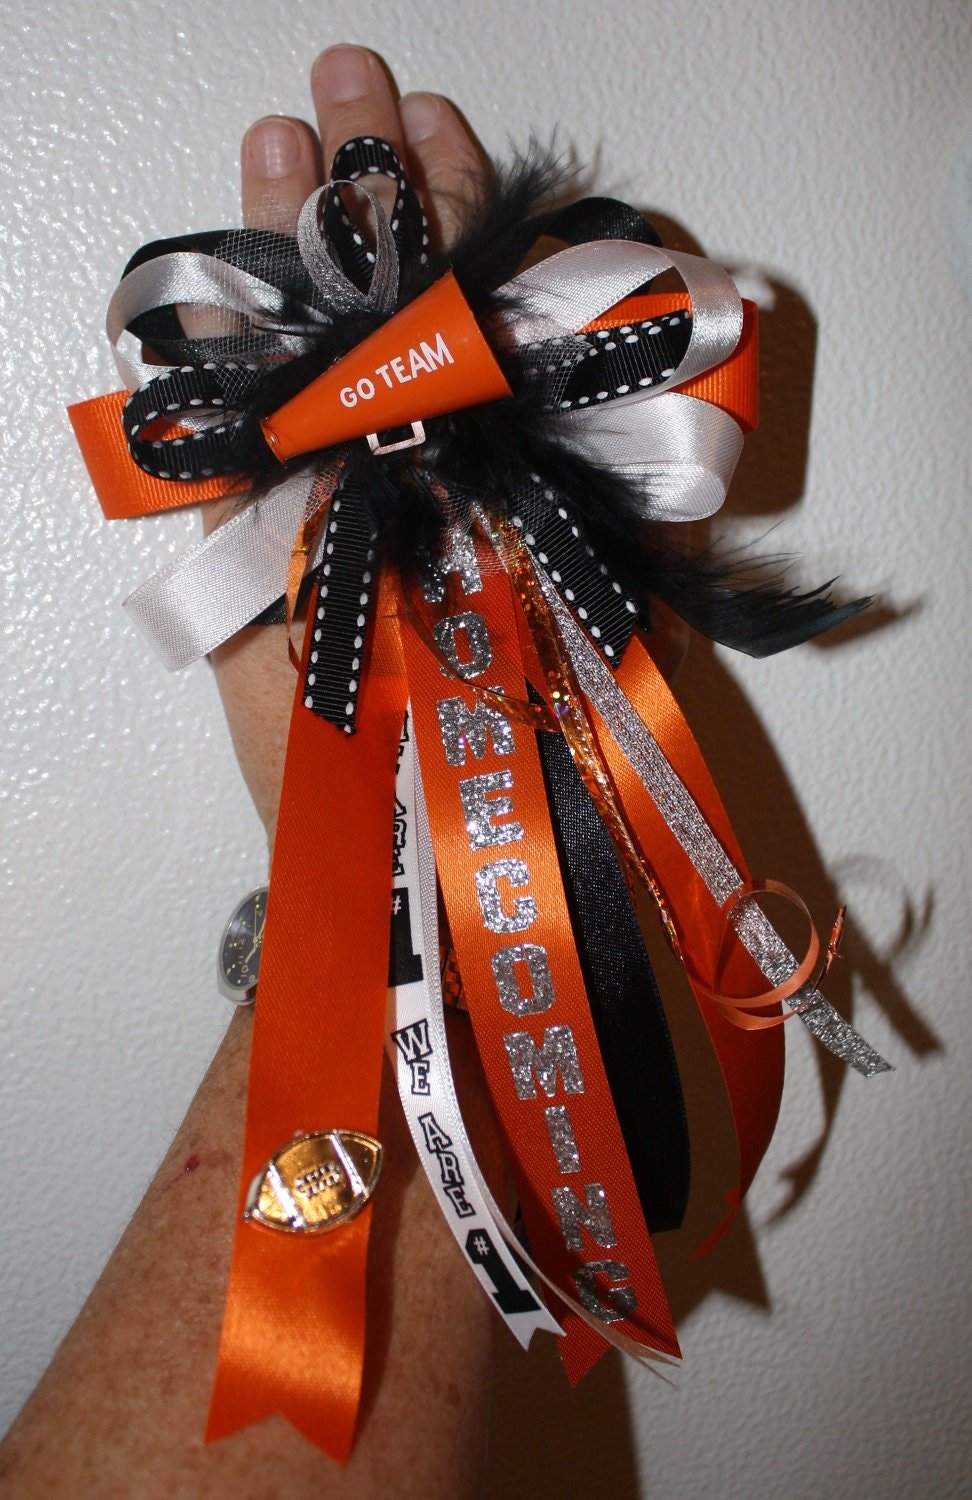 pictures homecoming mum ideas - Home ing Finger Mum by KrazydayzeeCreations on Etsy